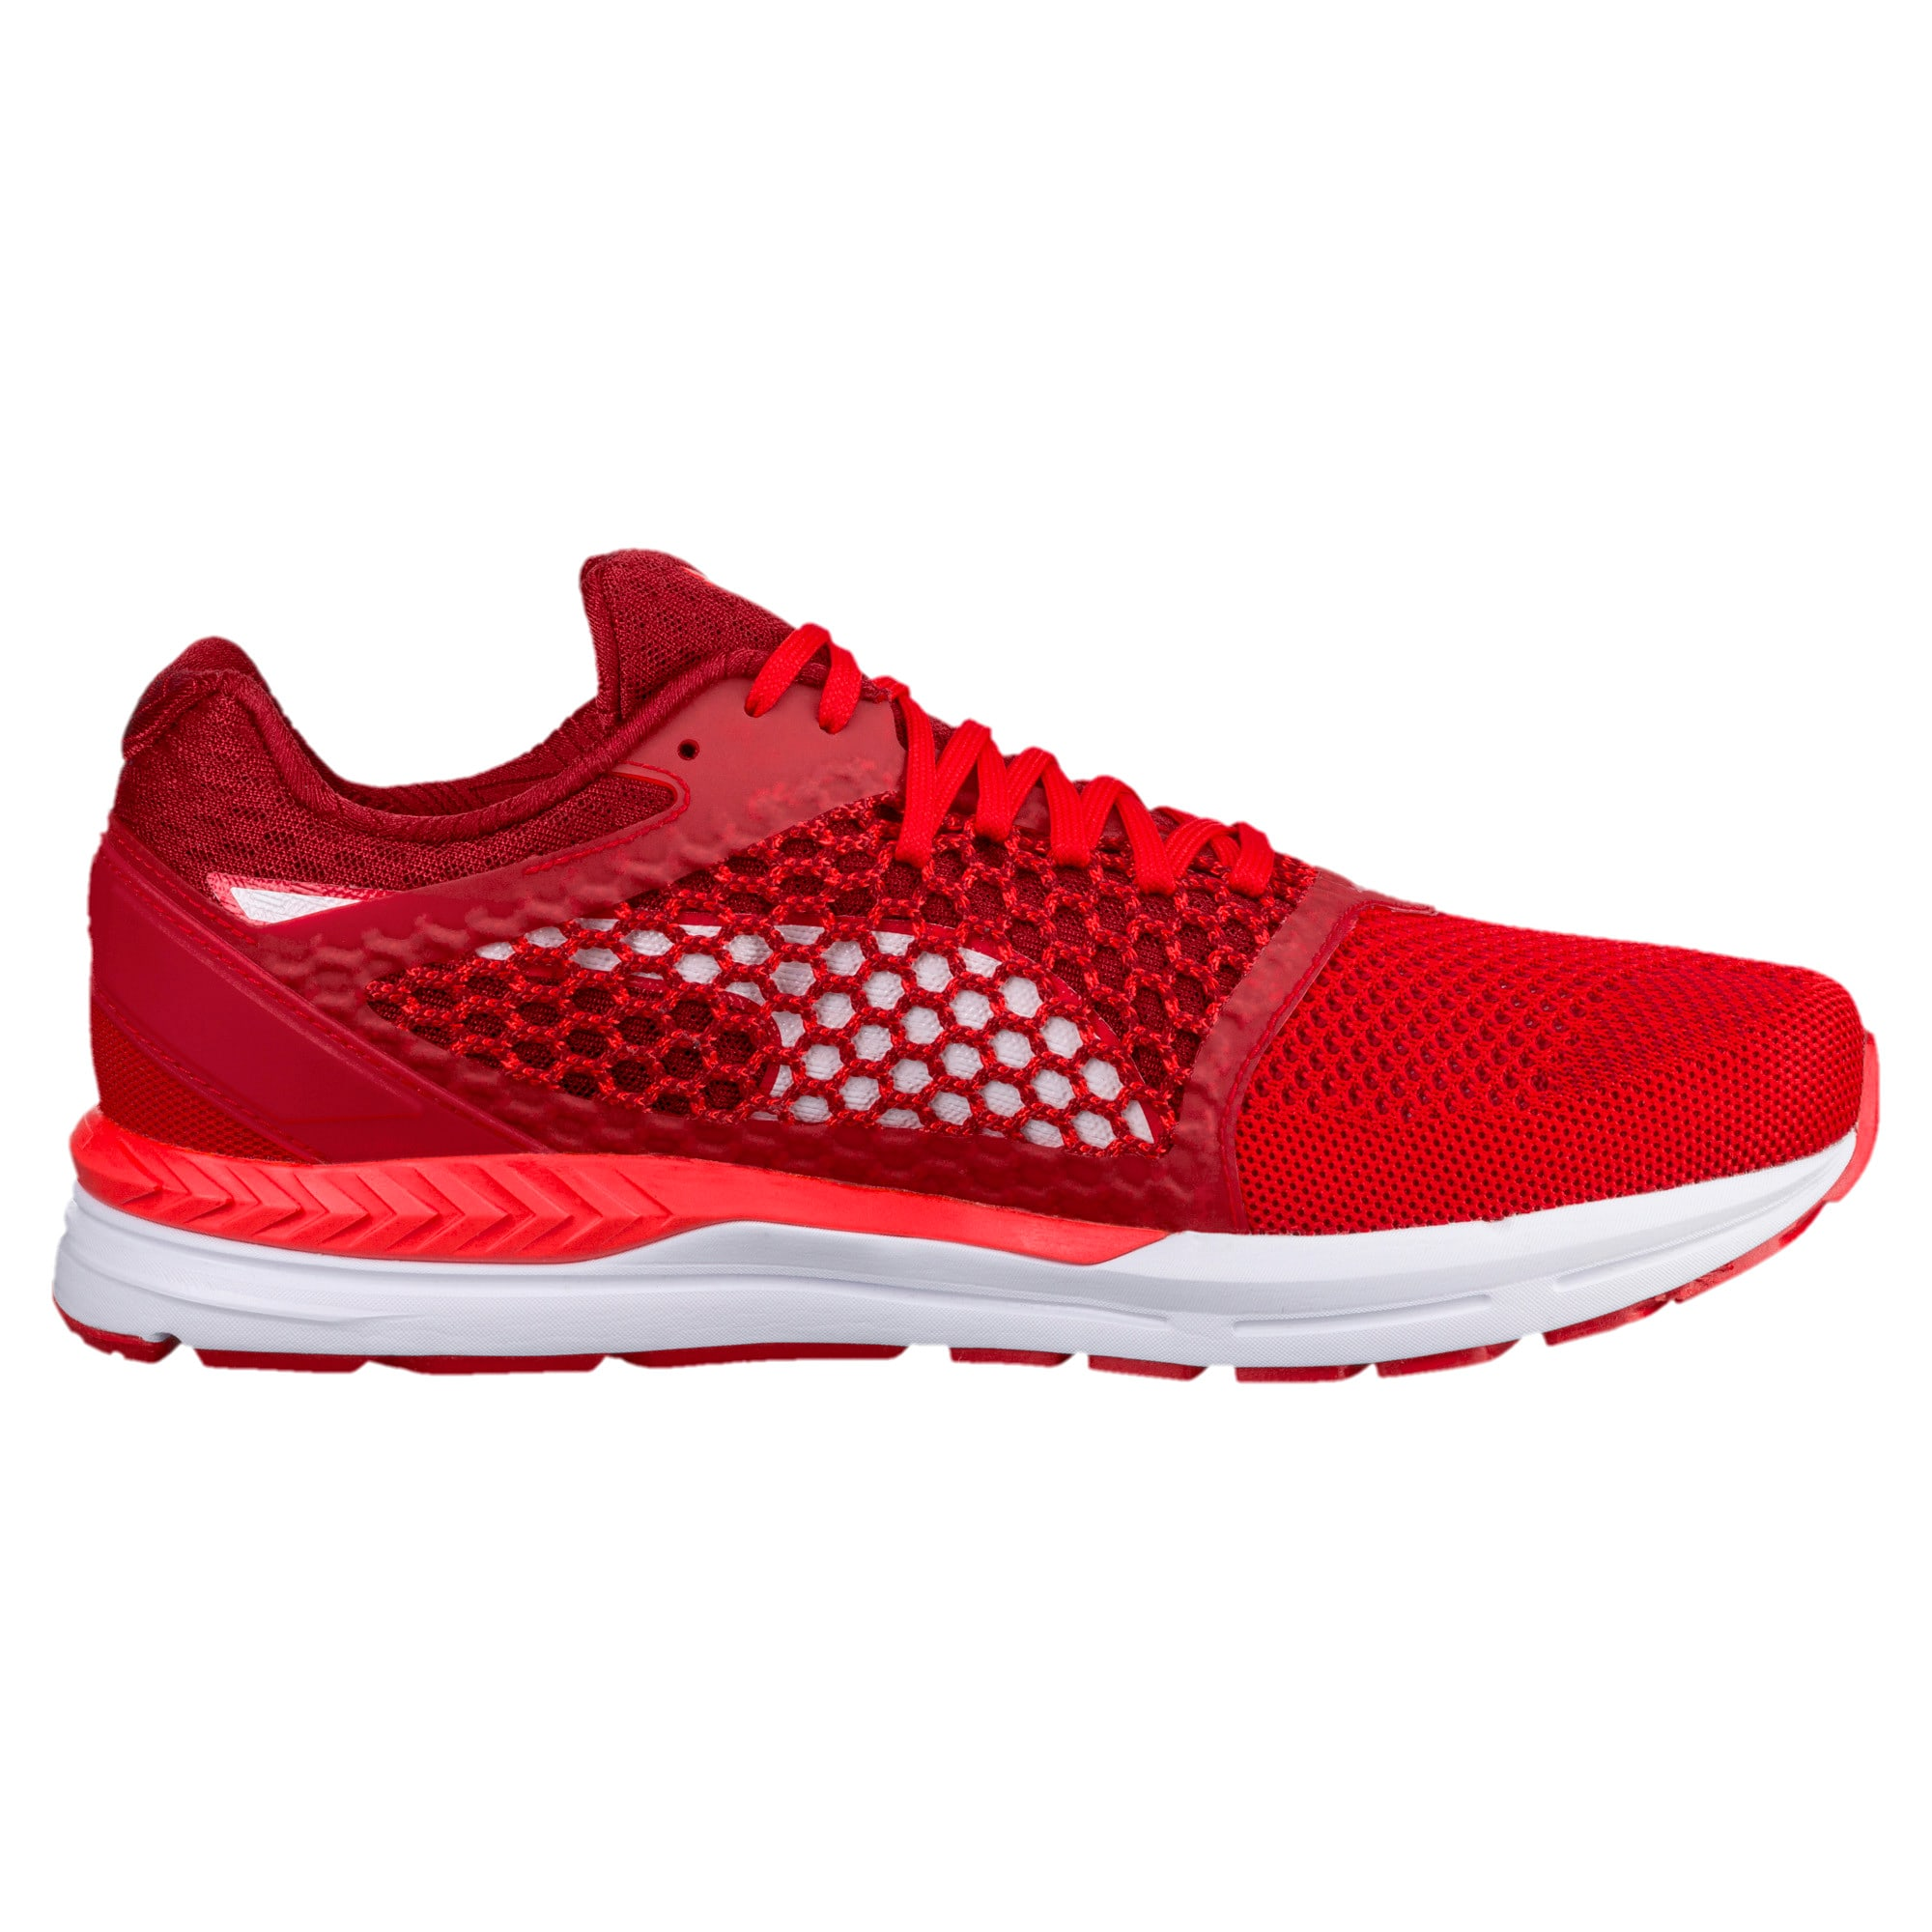 Thumbnail 5 of Speed 600 IGNITE 3 Men's Running Shoes, Scarlet-Red Dahlia-White, medium-IND